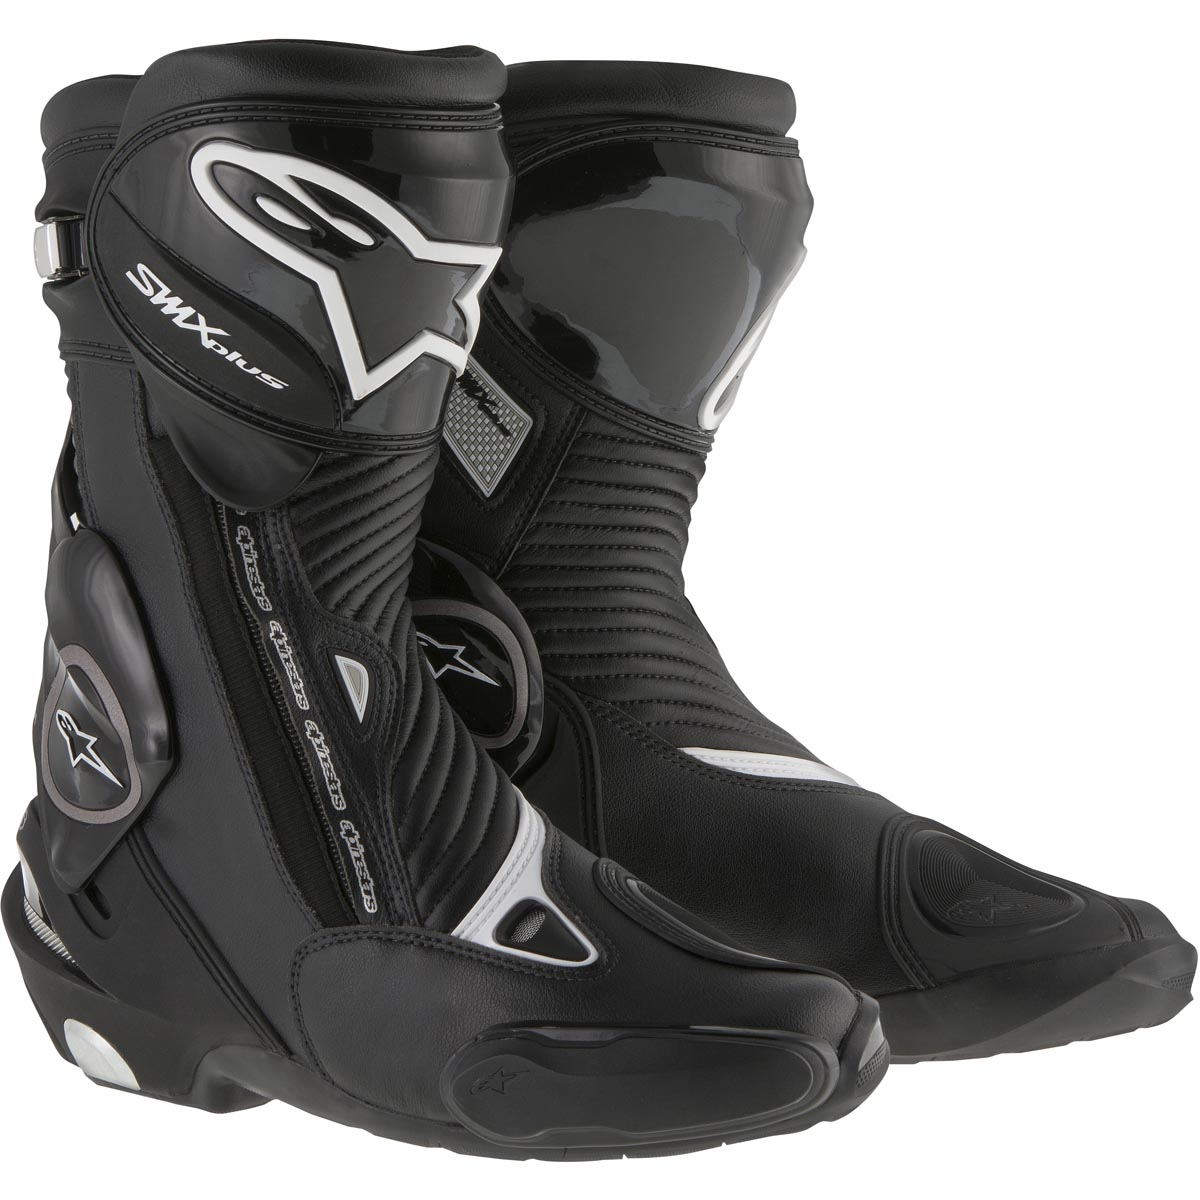 Alpinestars SMX Plus Racing/Performance Riding Boots Black